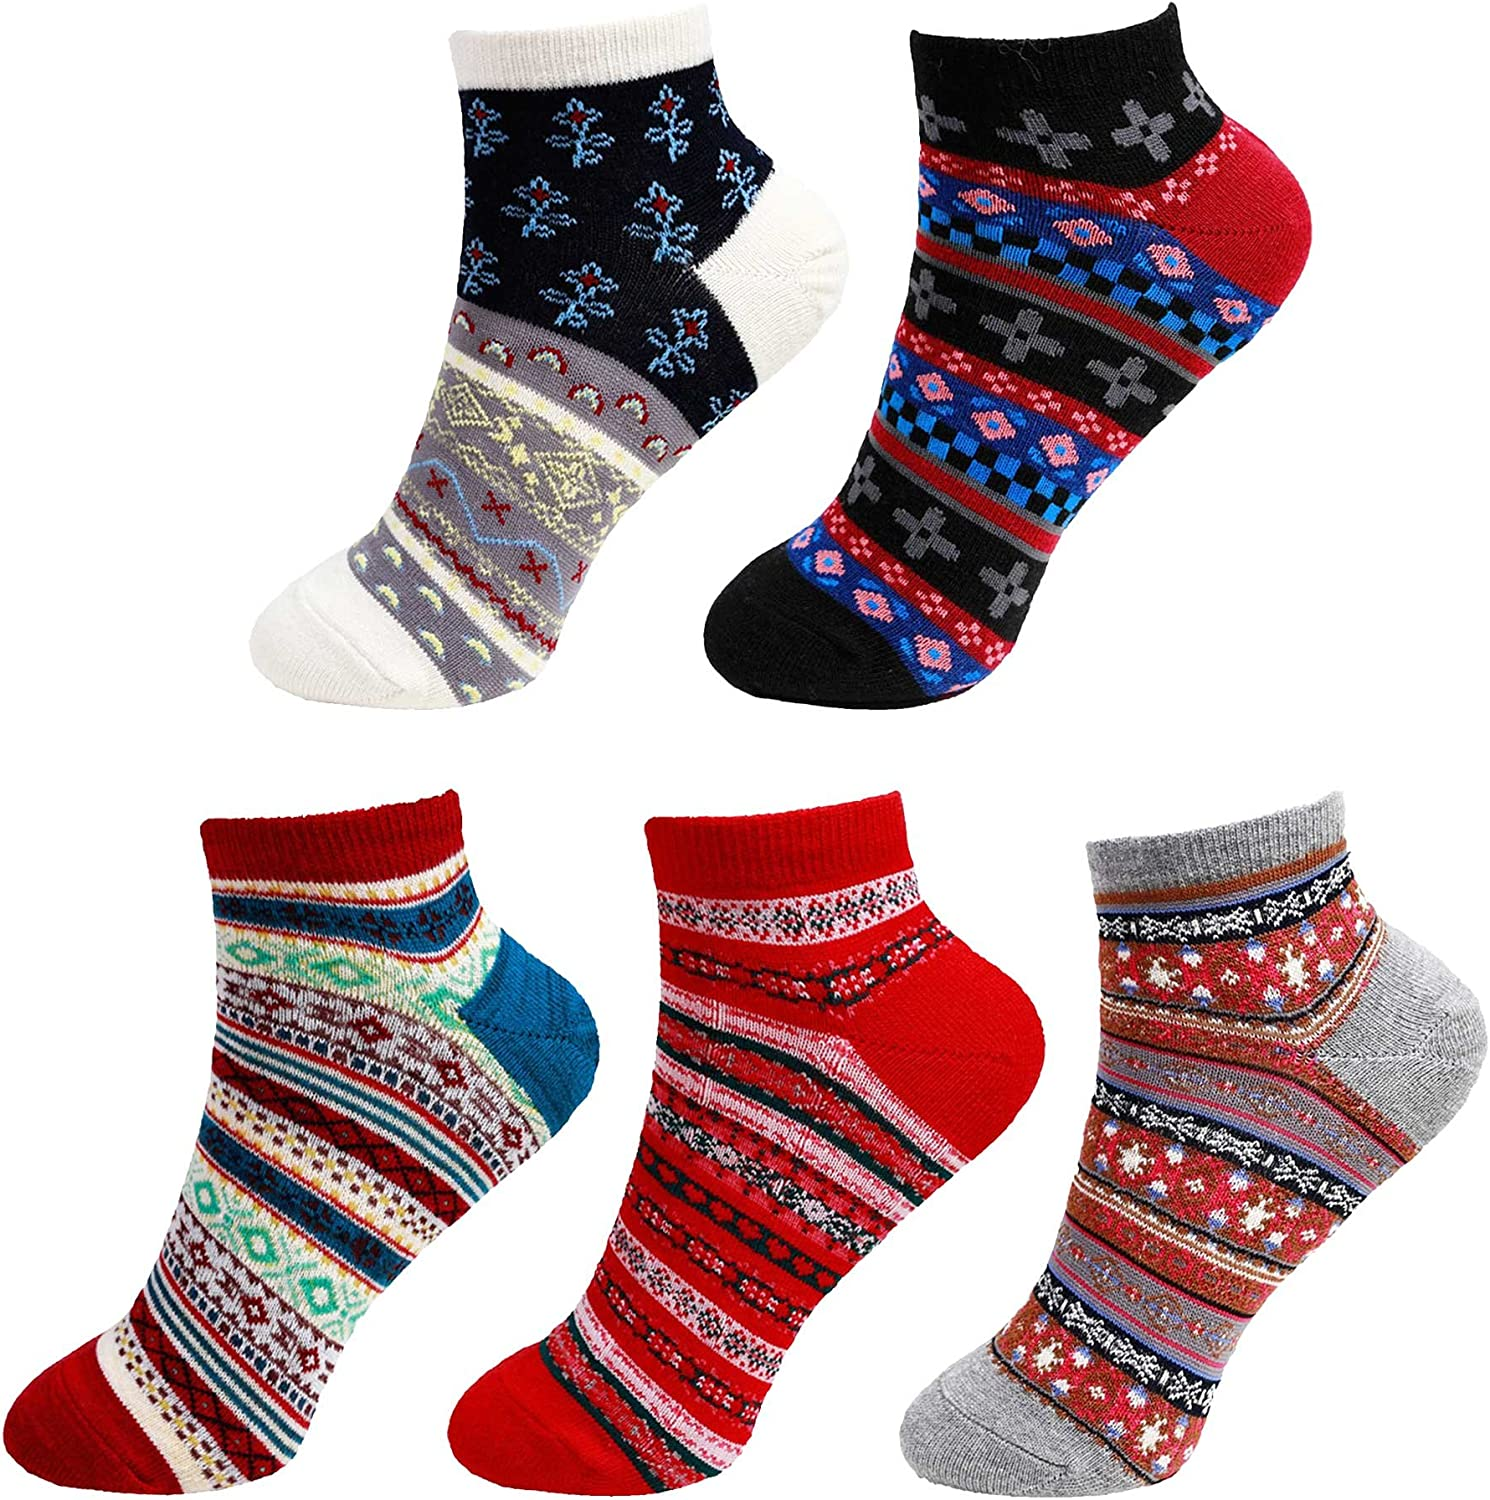 Women's Vintage Style Knitted Colorful Cotton Anklet Socks